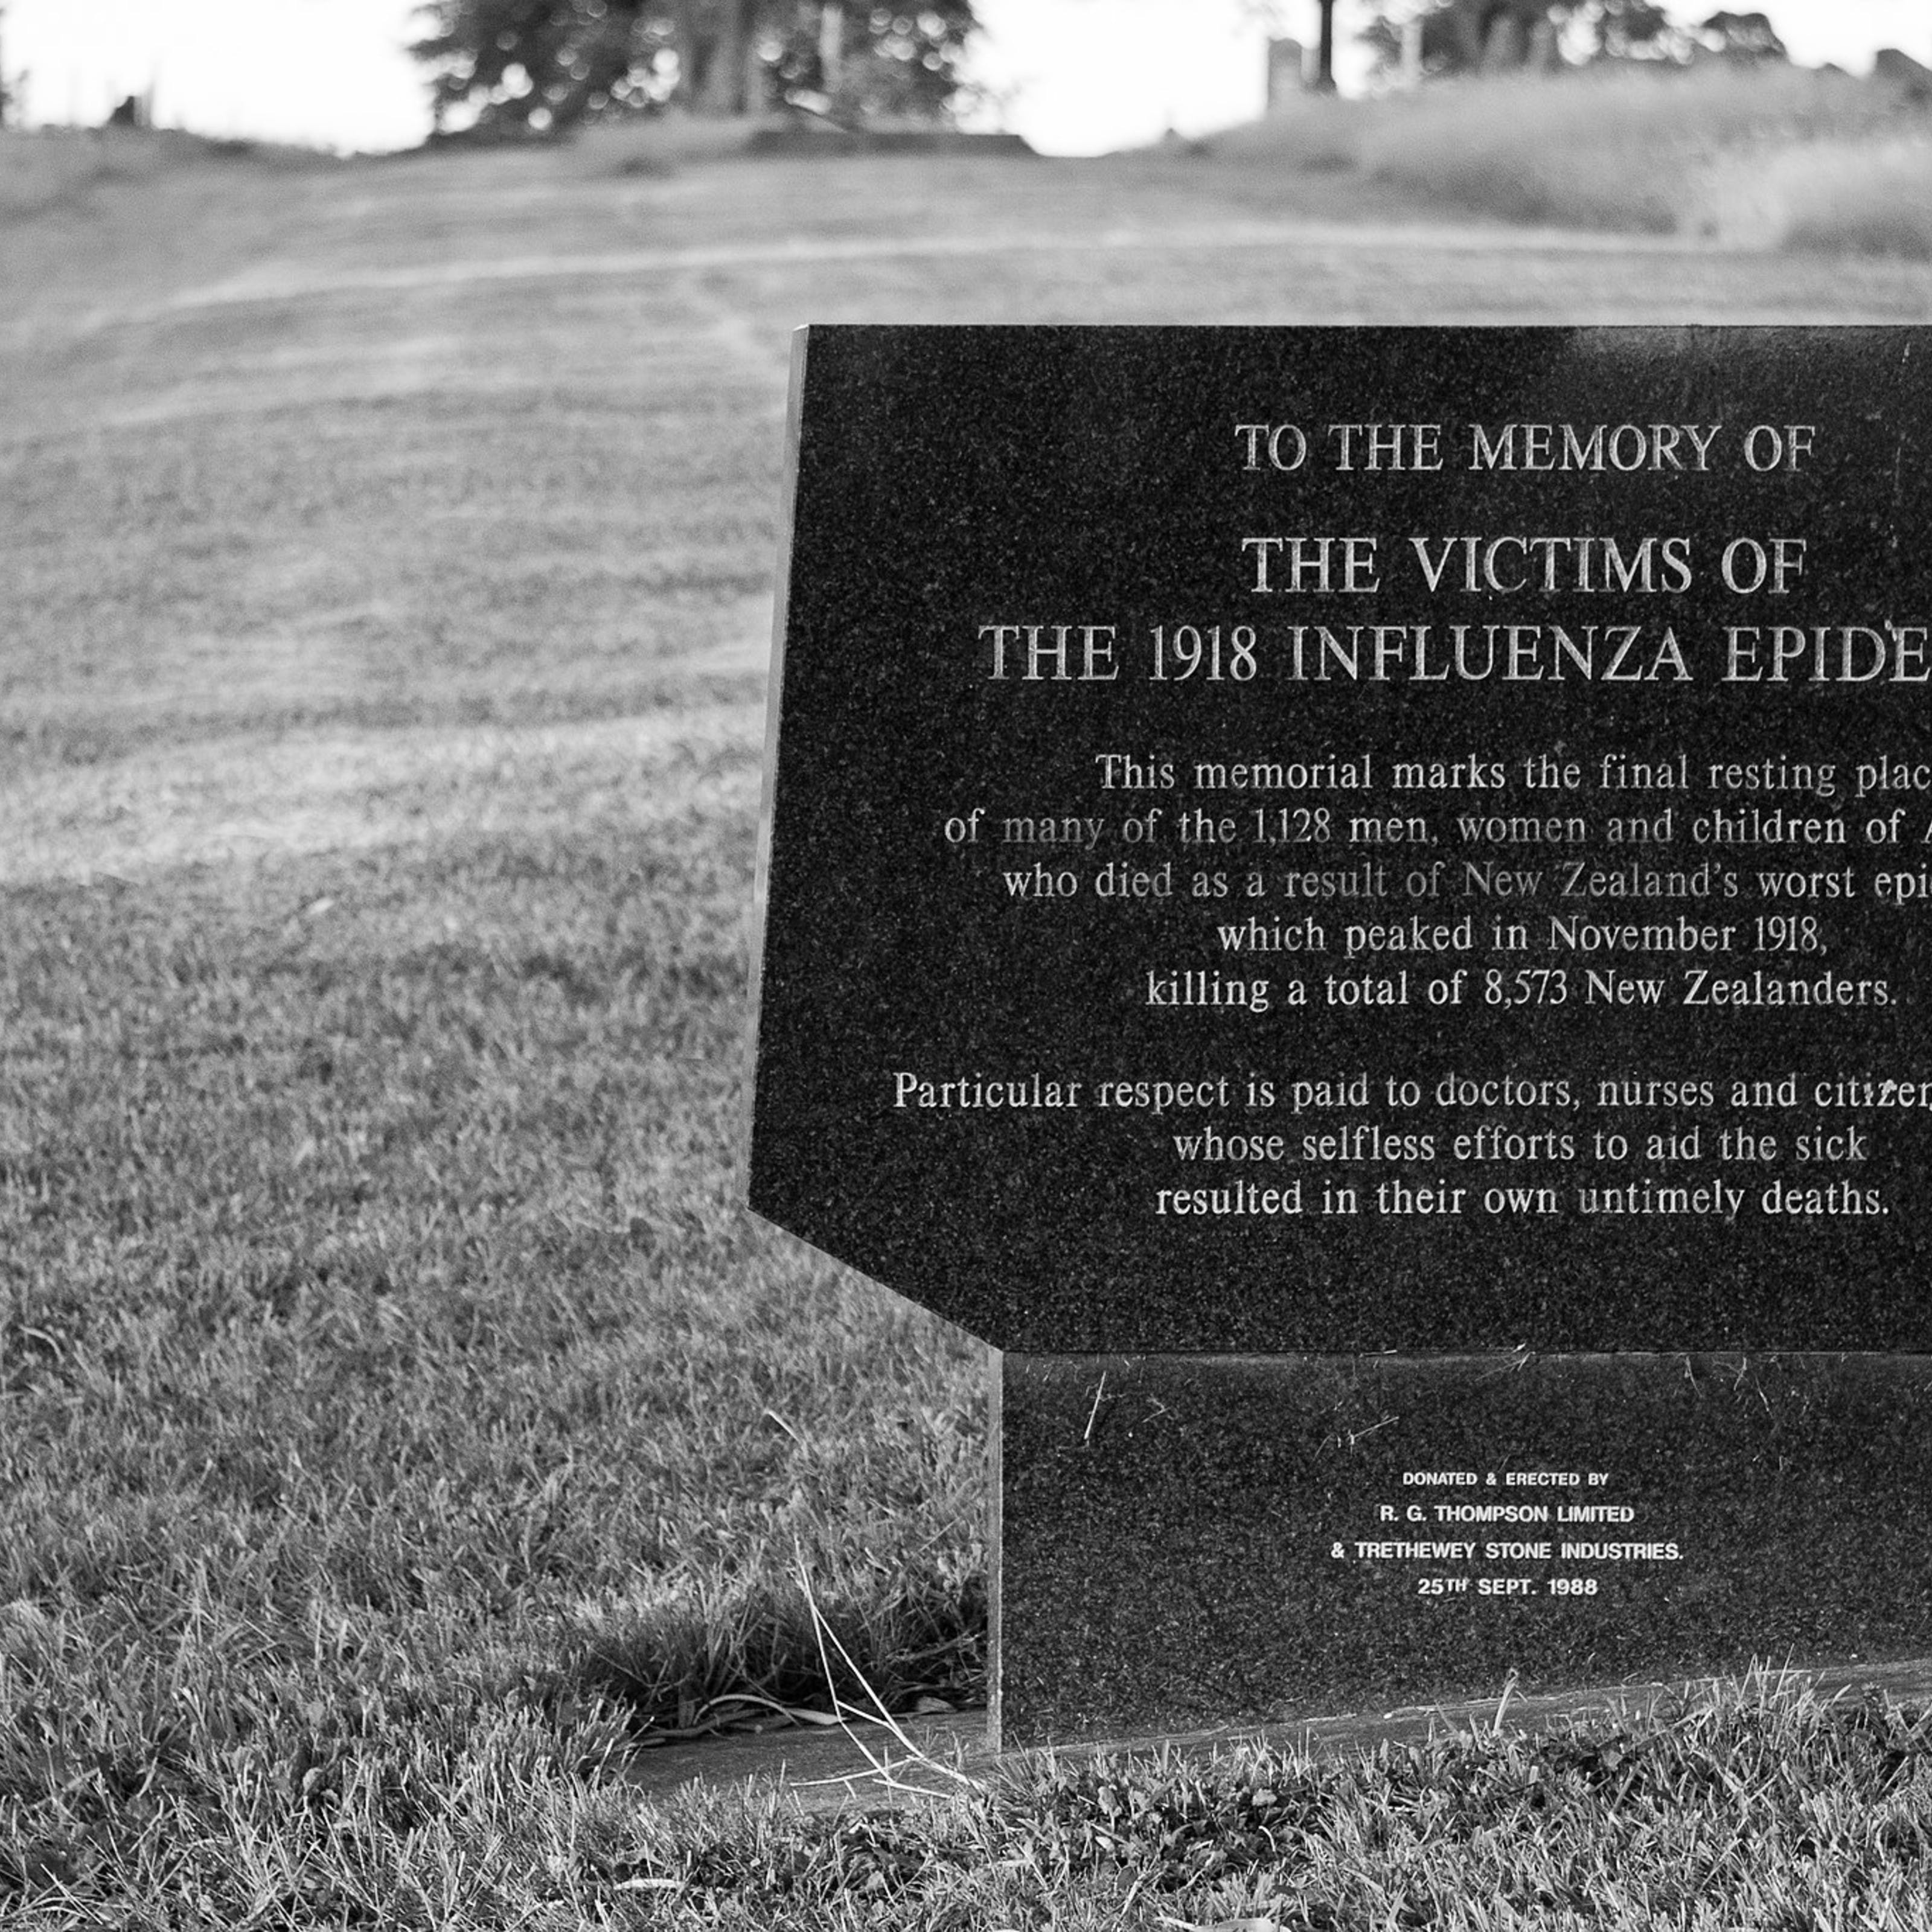 Plaque reads: This memorial marks the final resting place of many of the 1,128 men, women and children of Auckland who died as a result of New Zealand's worst epidemic which peaked in November 1918, killing a total of 8,573 New Zealanders. At the bottom it says it was donated and erected in 1988.